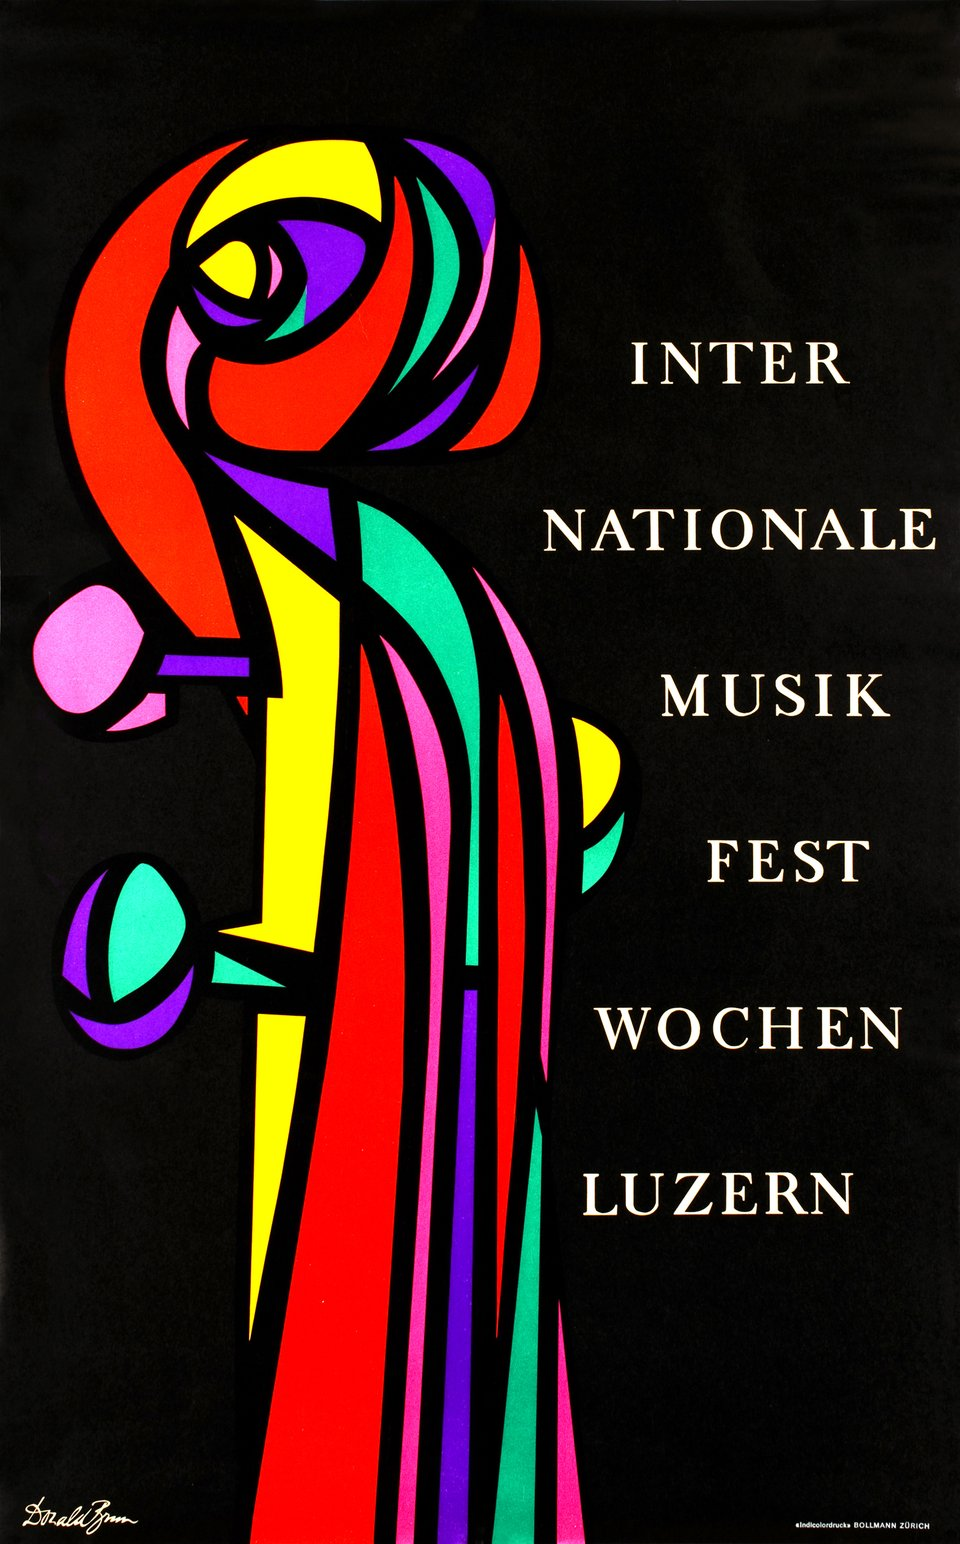 Luzern, Internationale Musik-Festwochen 1954 – Affiche ancienne – Donald BRUN – 1954